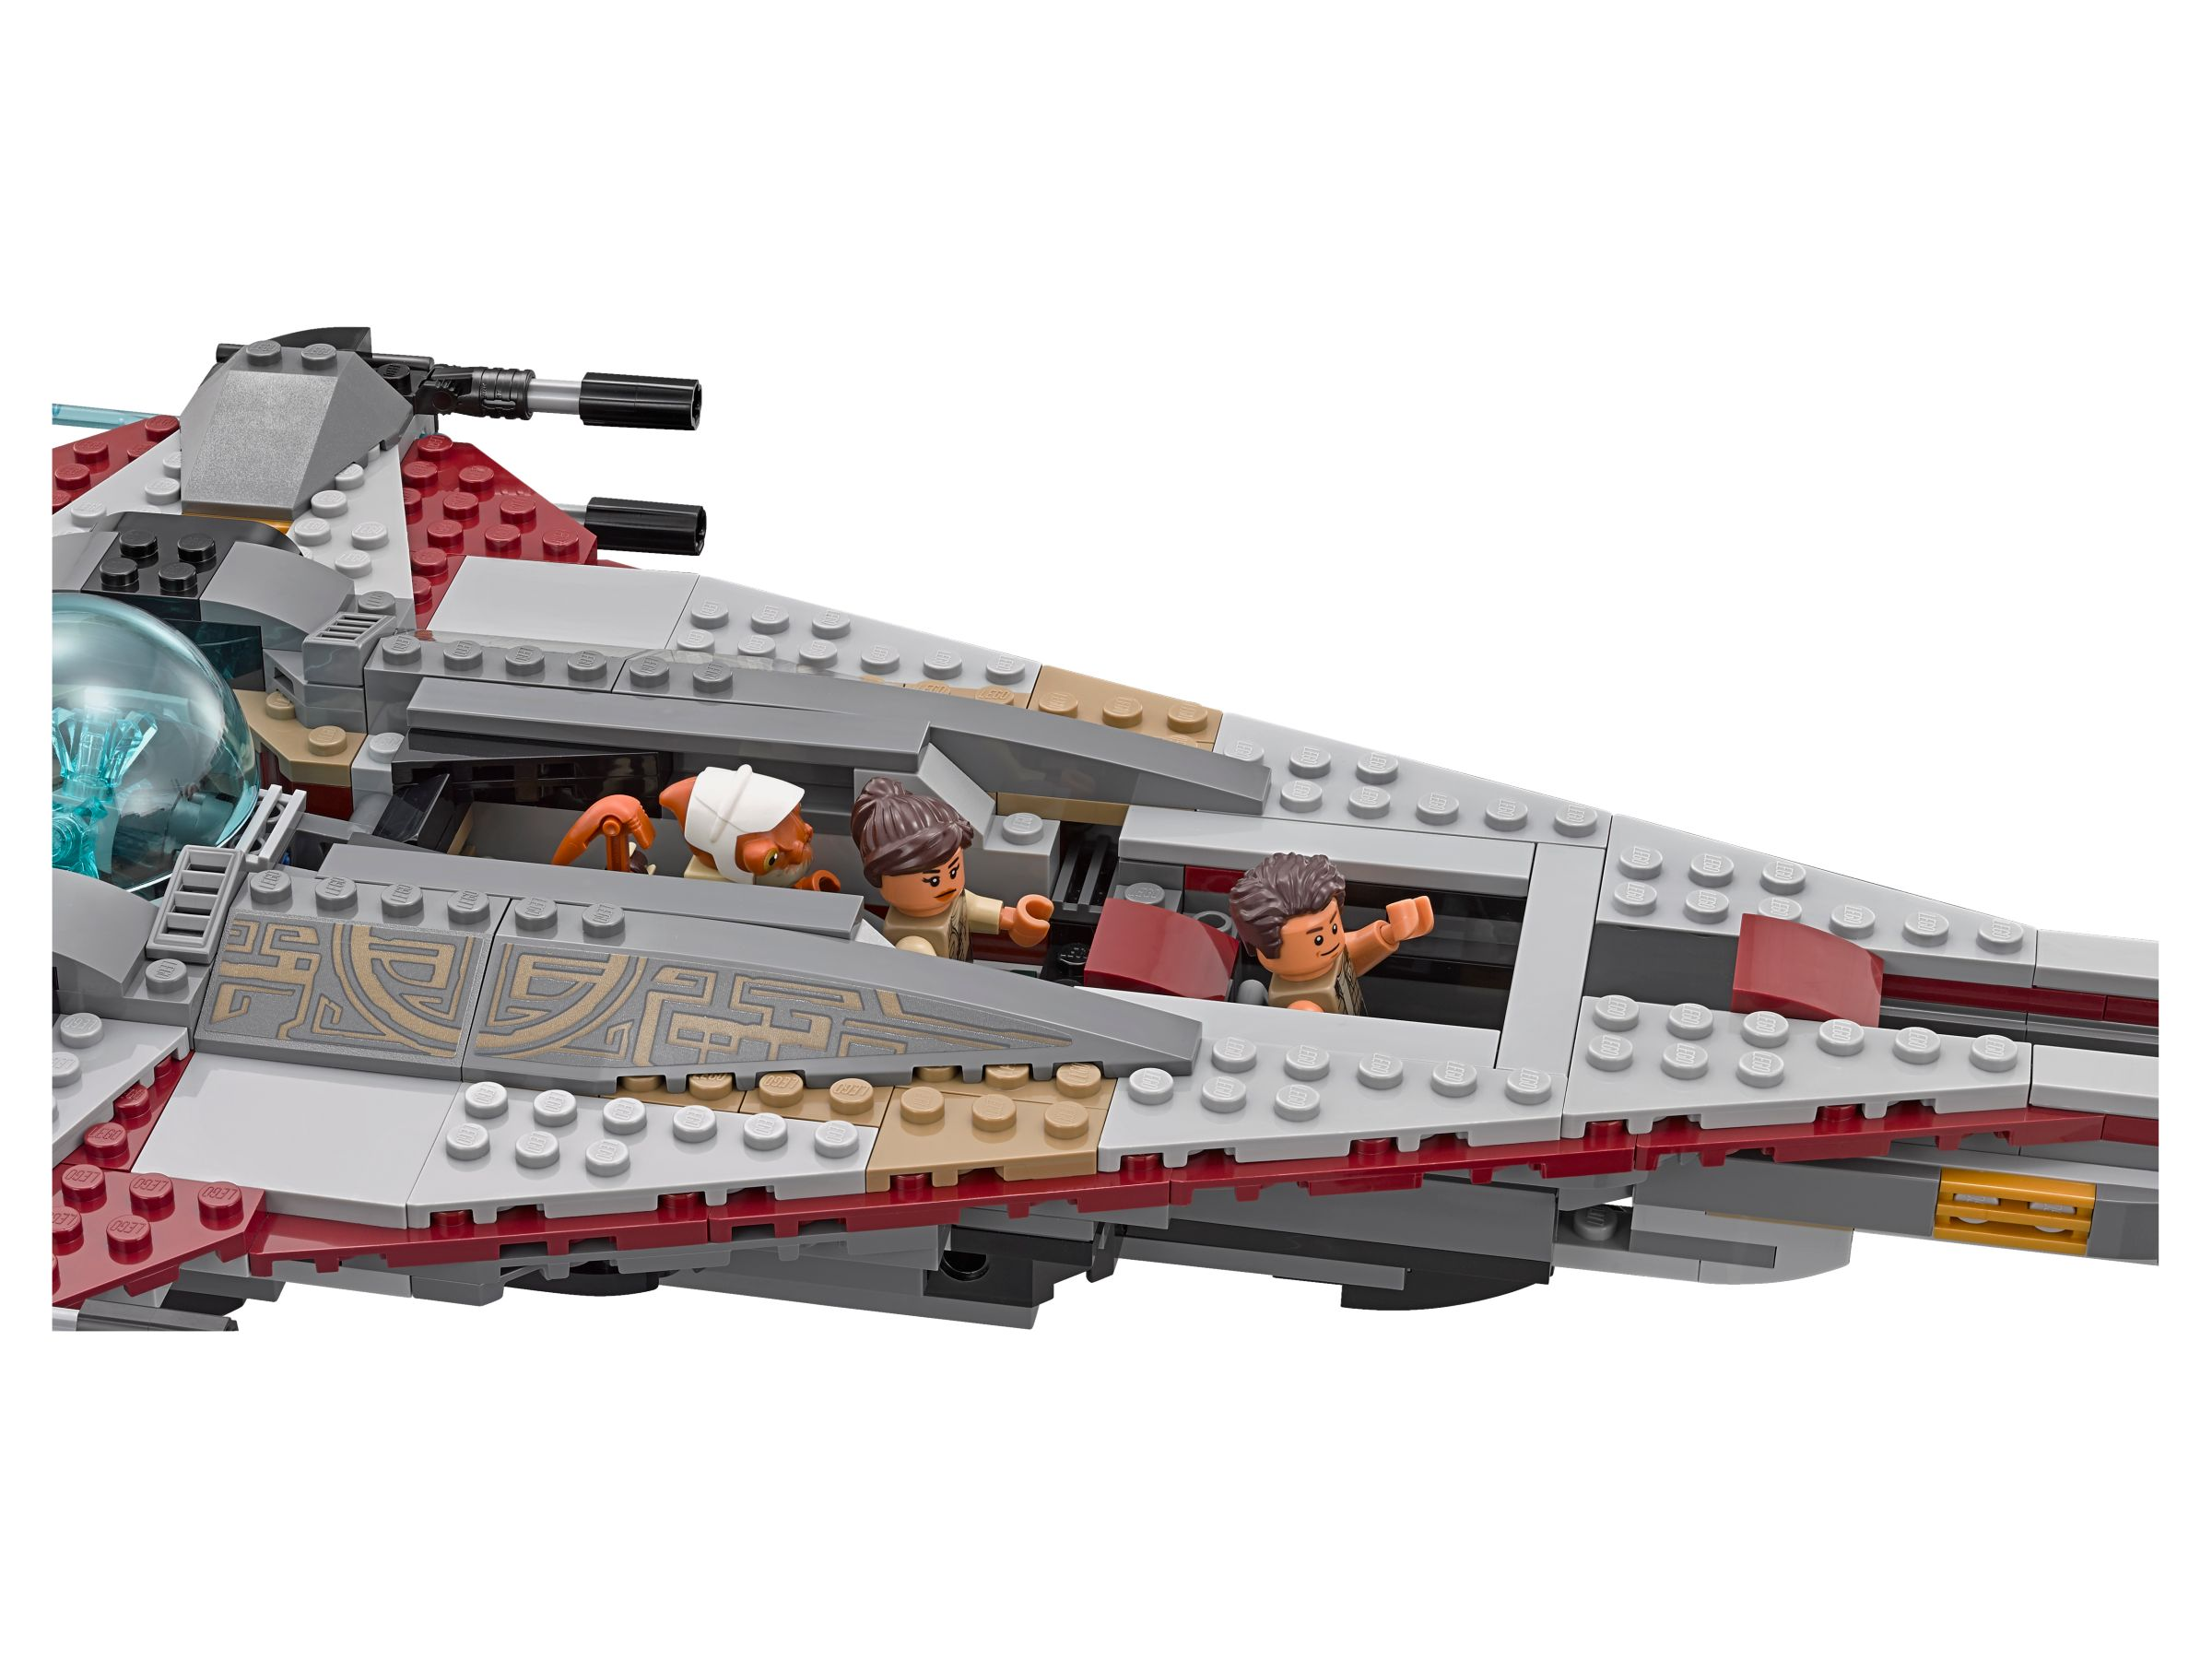 LEGO Star Wars 75186 The Arrowhead LEGO_75186_alt3.jpg